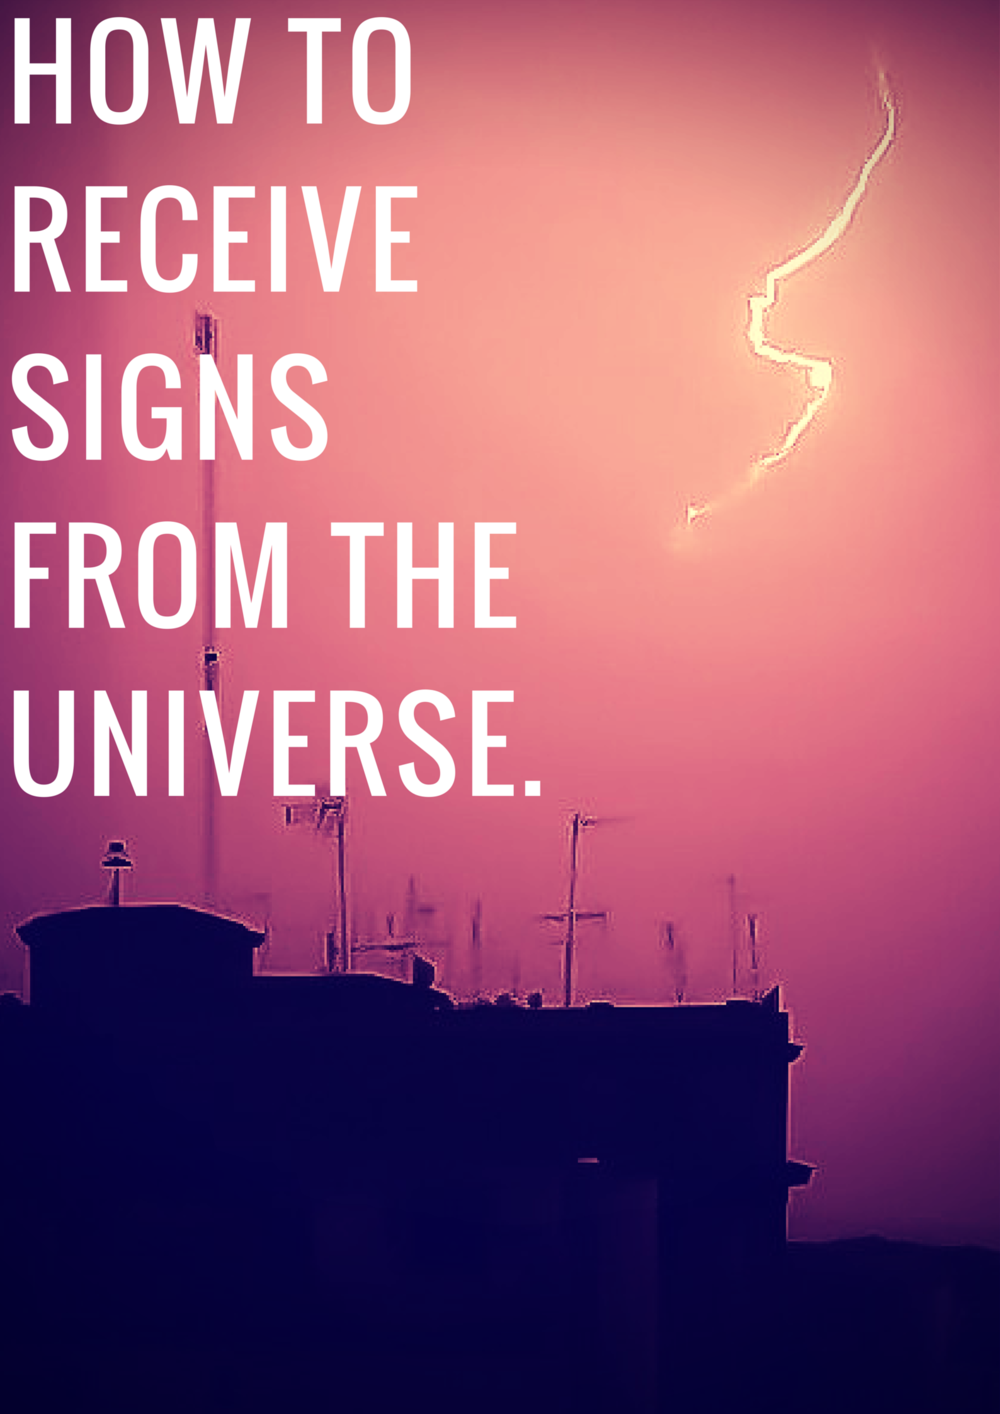 HOW TO RECEIVE SIGNS FROM THE UNIVERSE